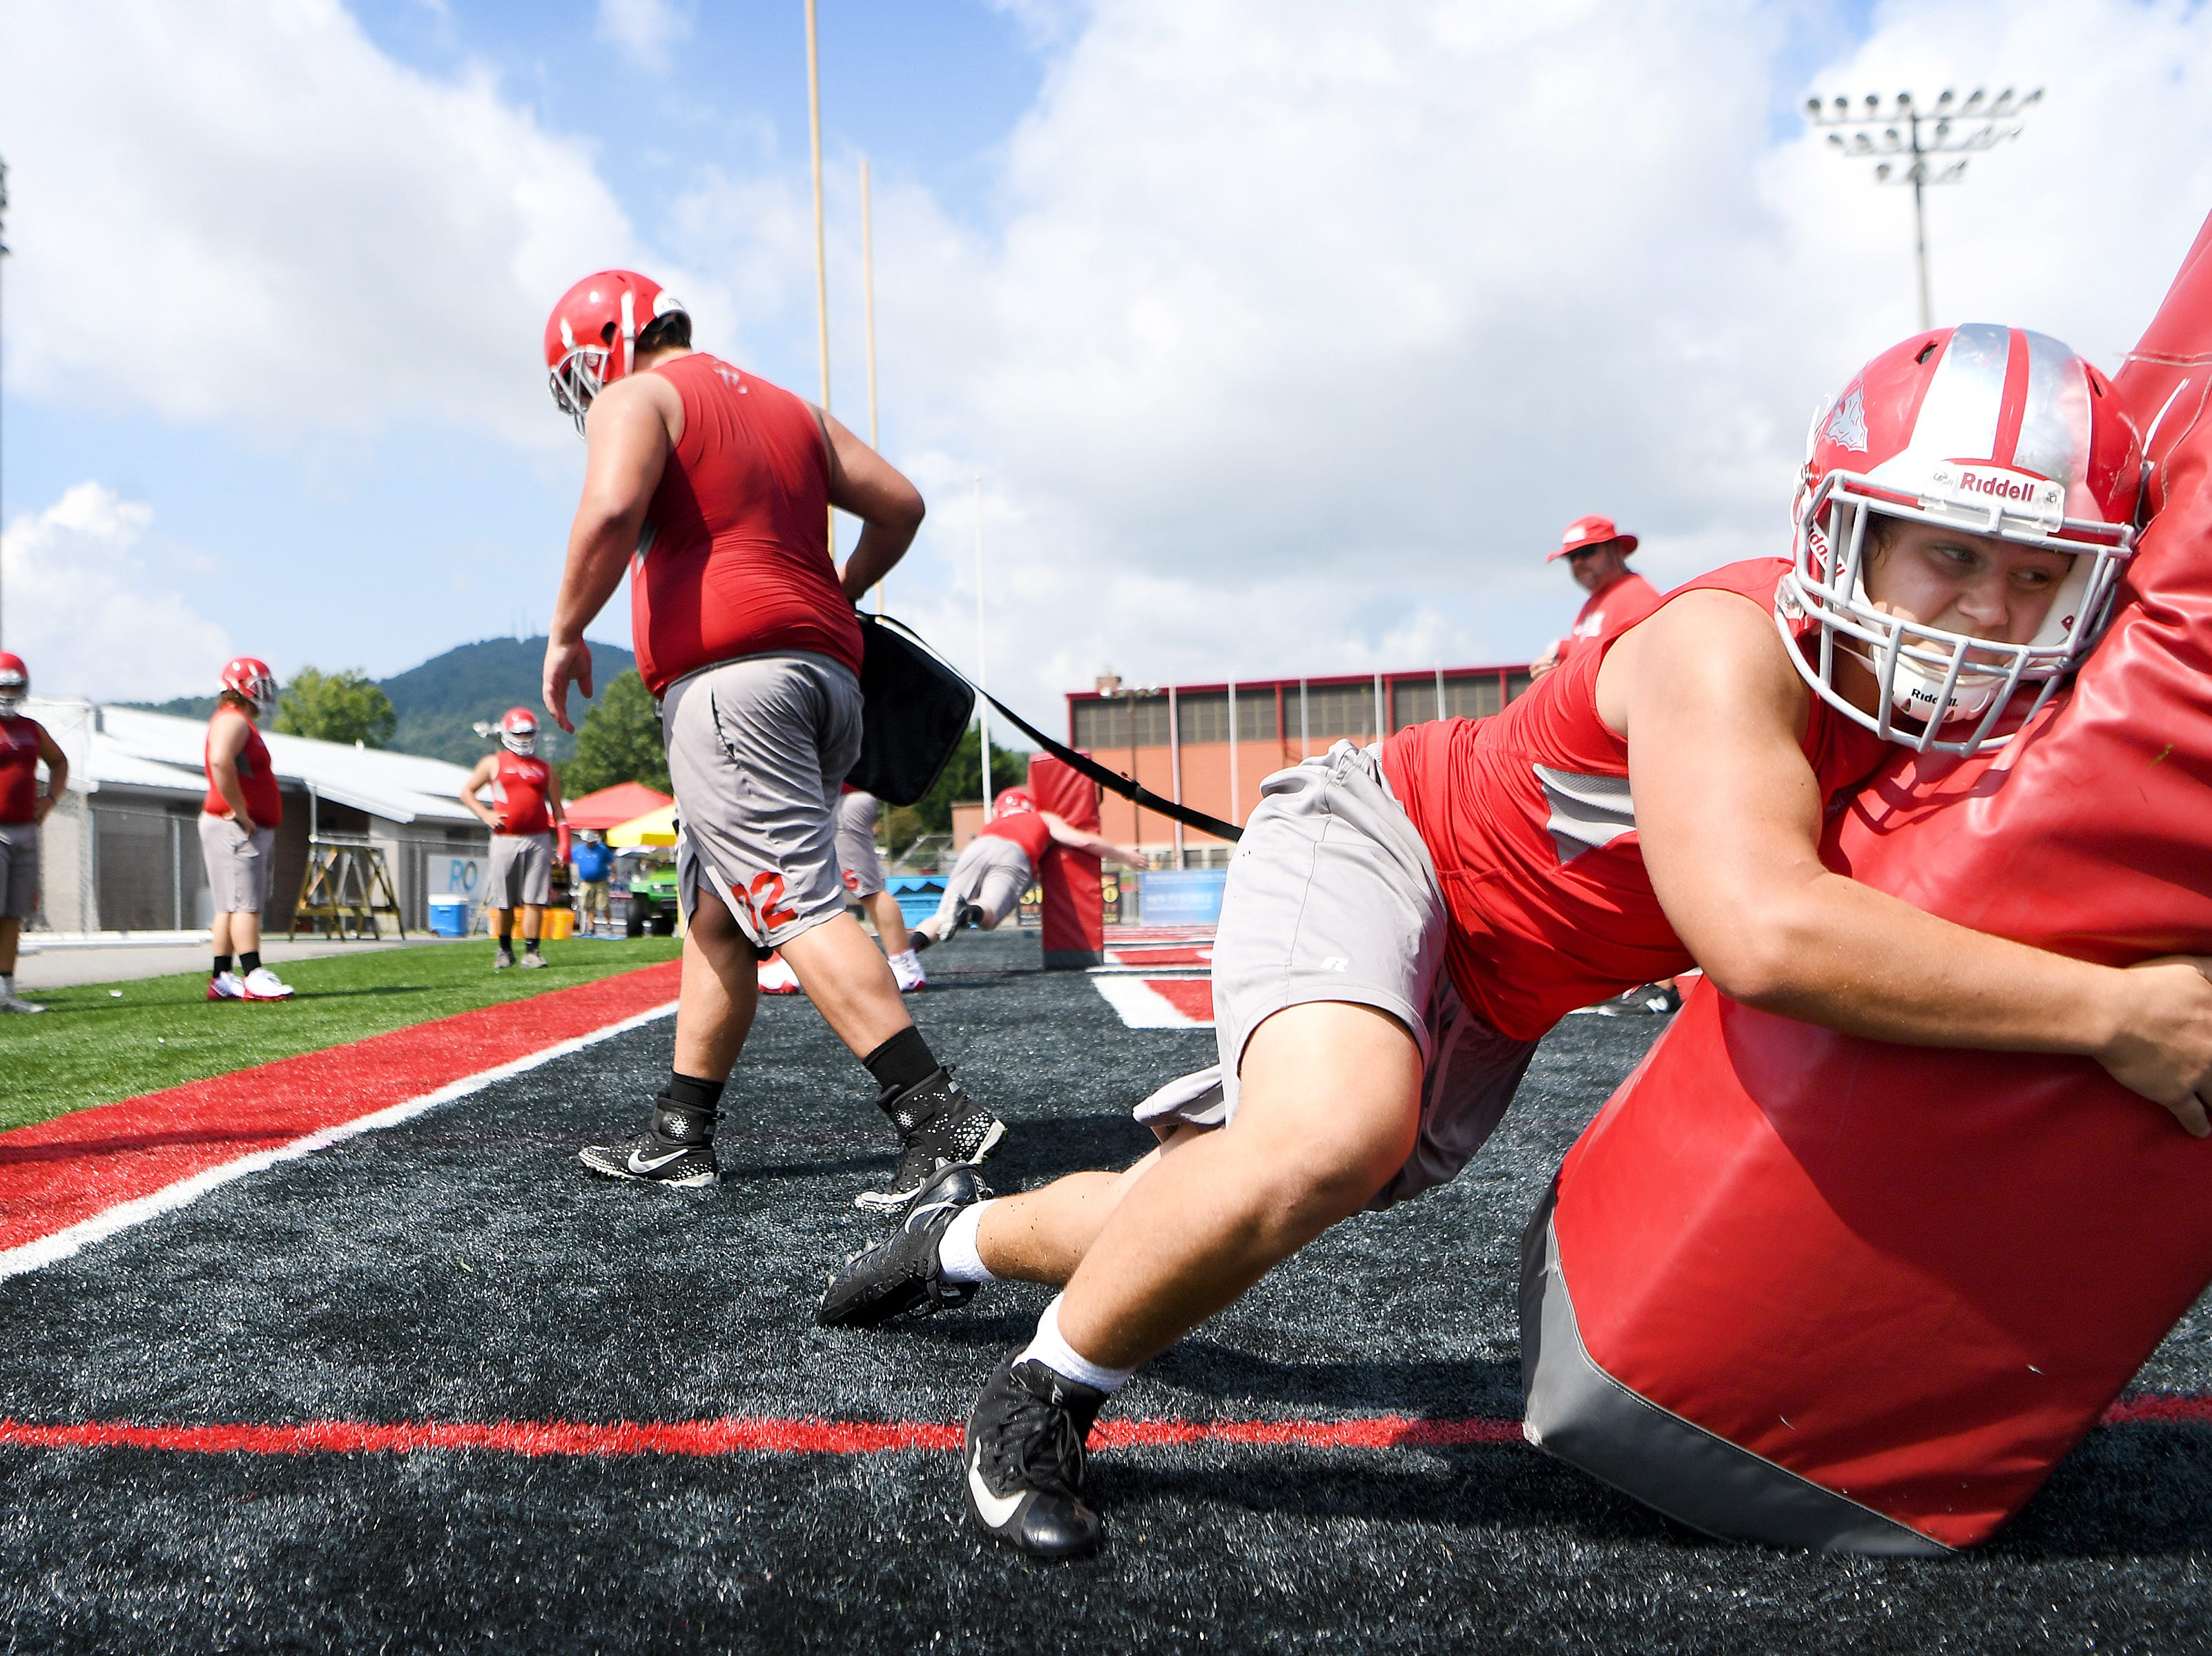 Erwin rising junior Seth Lunsford works on a tackling drill during the first official practice of the season at Erwin High School on Monday, Aug. 30, 2018.